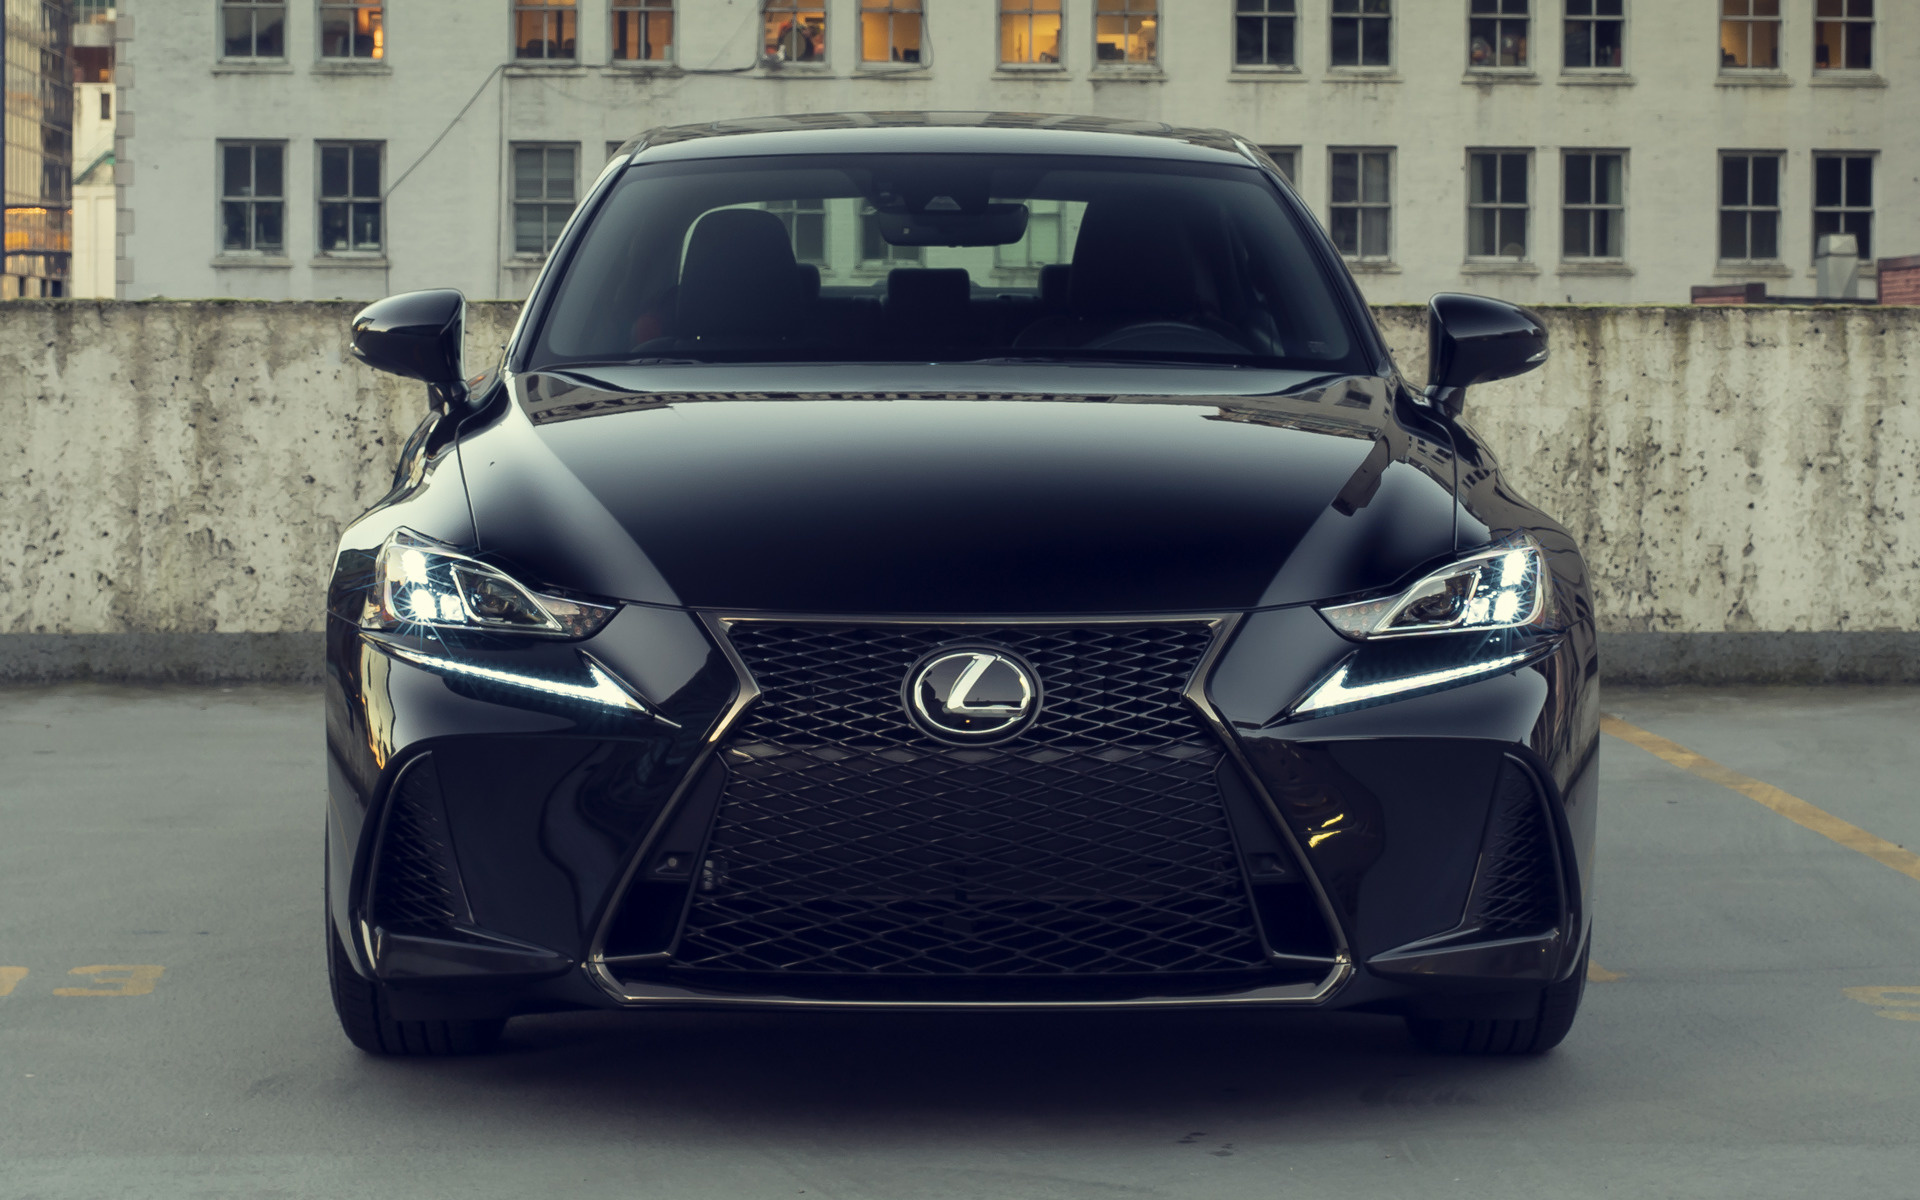 Lotus Sports Car >> 2019 Lexus IS F Sport Black Line (US) - Wallpapers and HD Images | Car Pixel